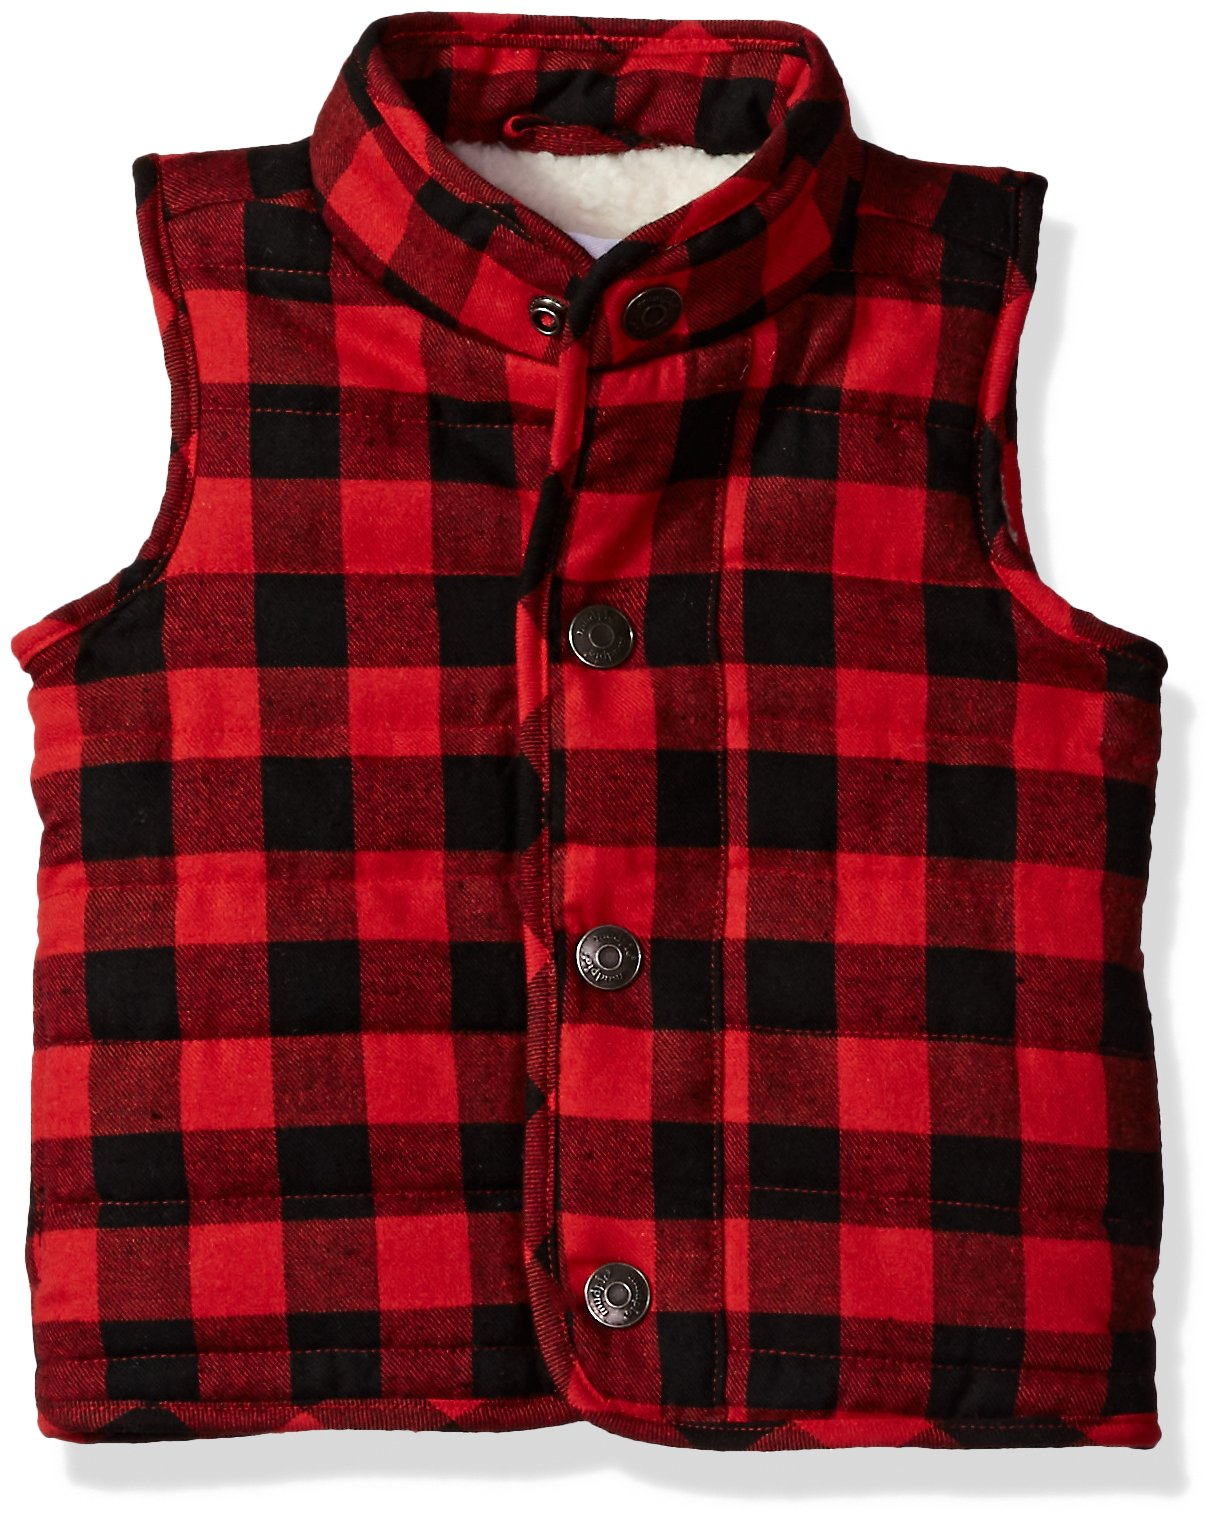 Mud Pie Baby Boys' Toddler Sherpa Lined Quilted Vest, Red Buffalo, SM/ 12-24 MOS by Mud Pie